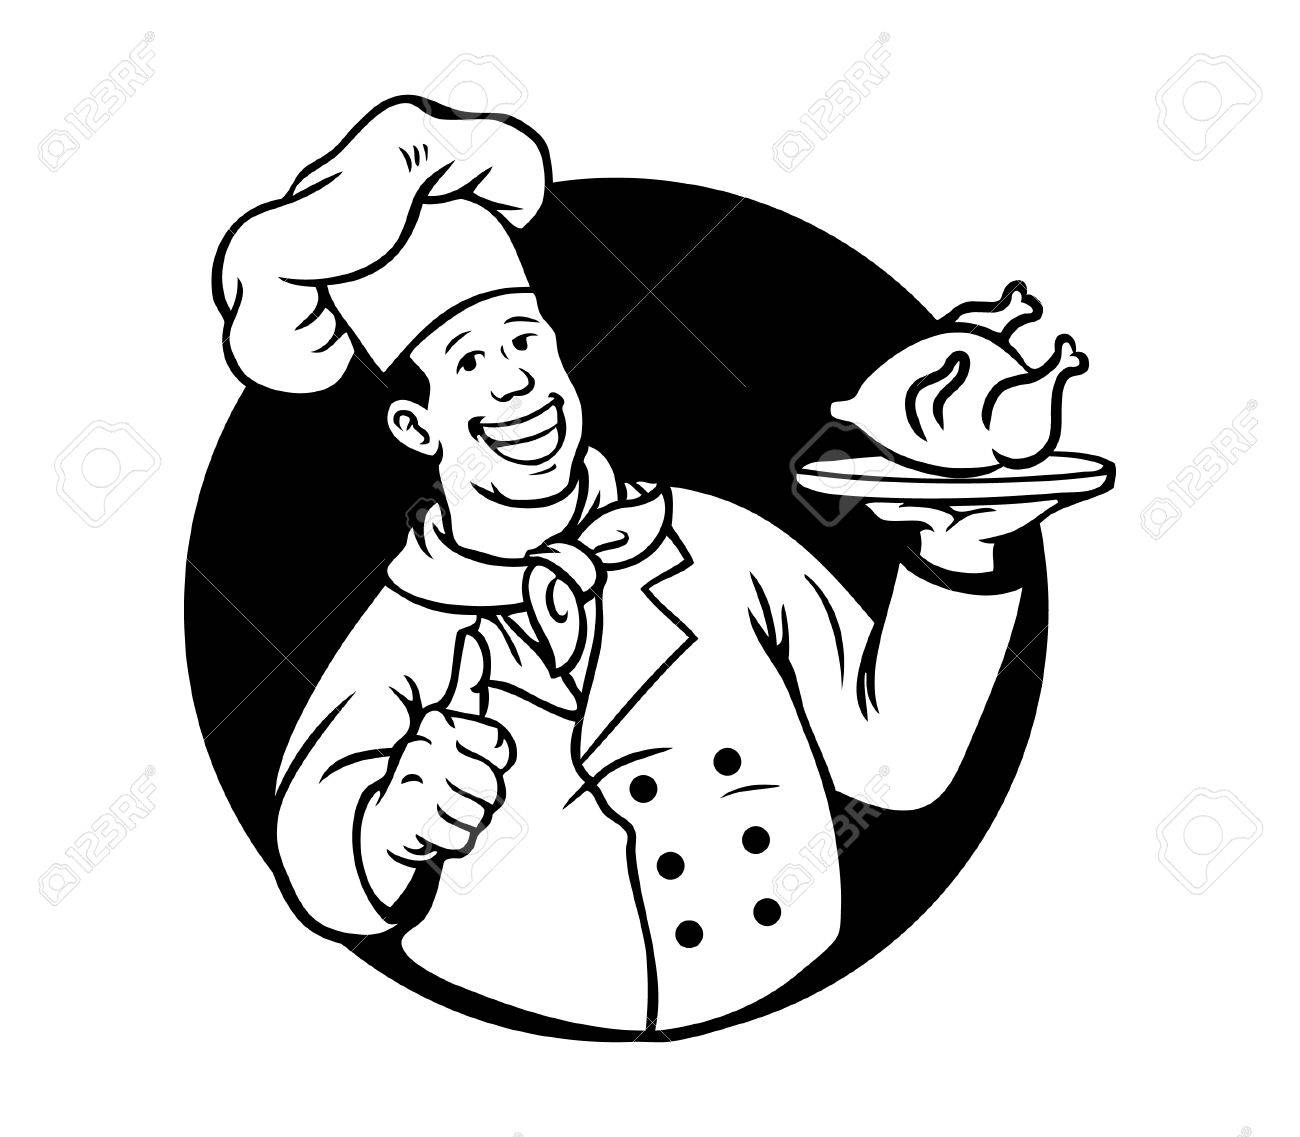 Chef Cooking Fried Chicken Black White Royalty Free Cliparts Vectors And Stock Illustration Image 64426888